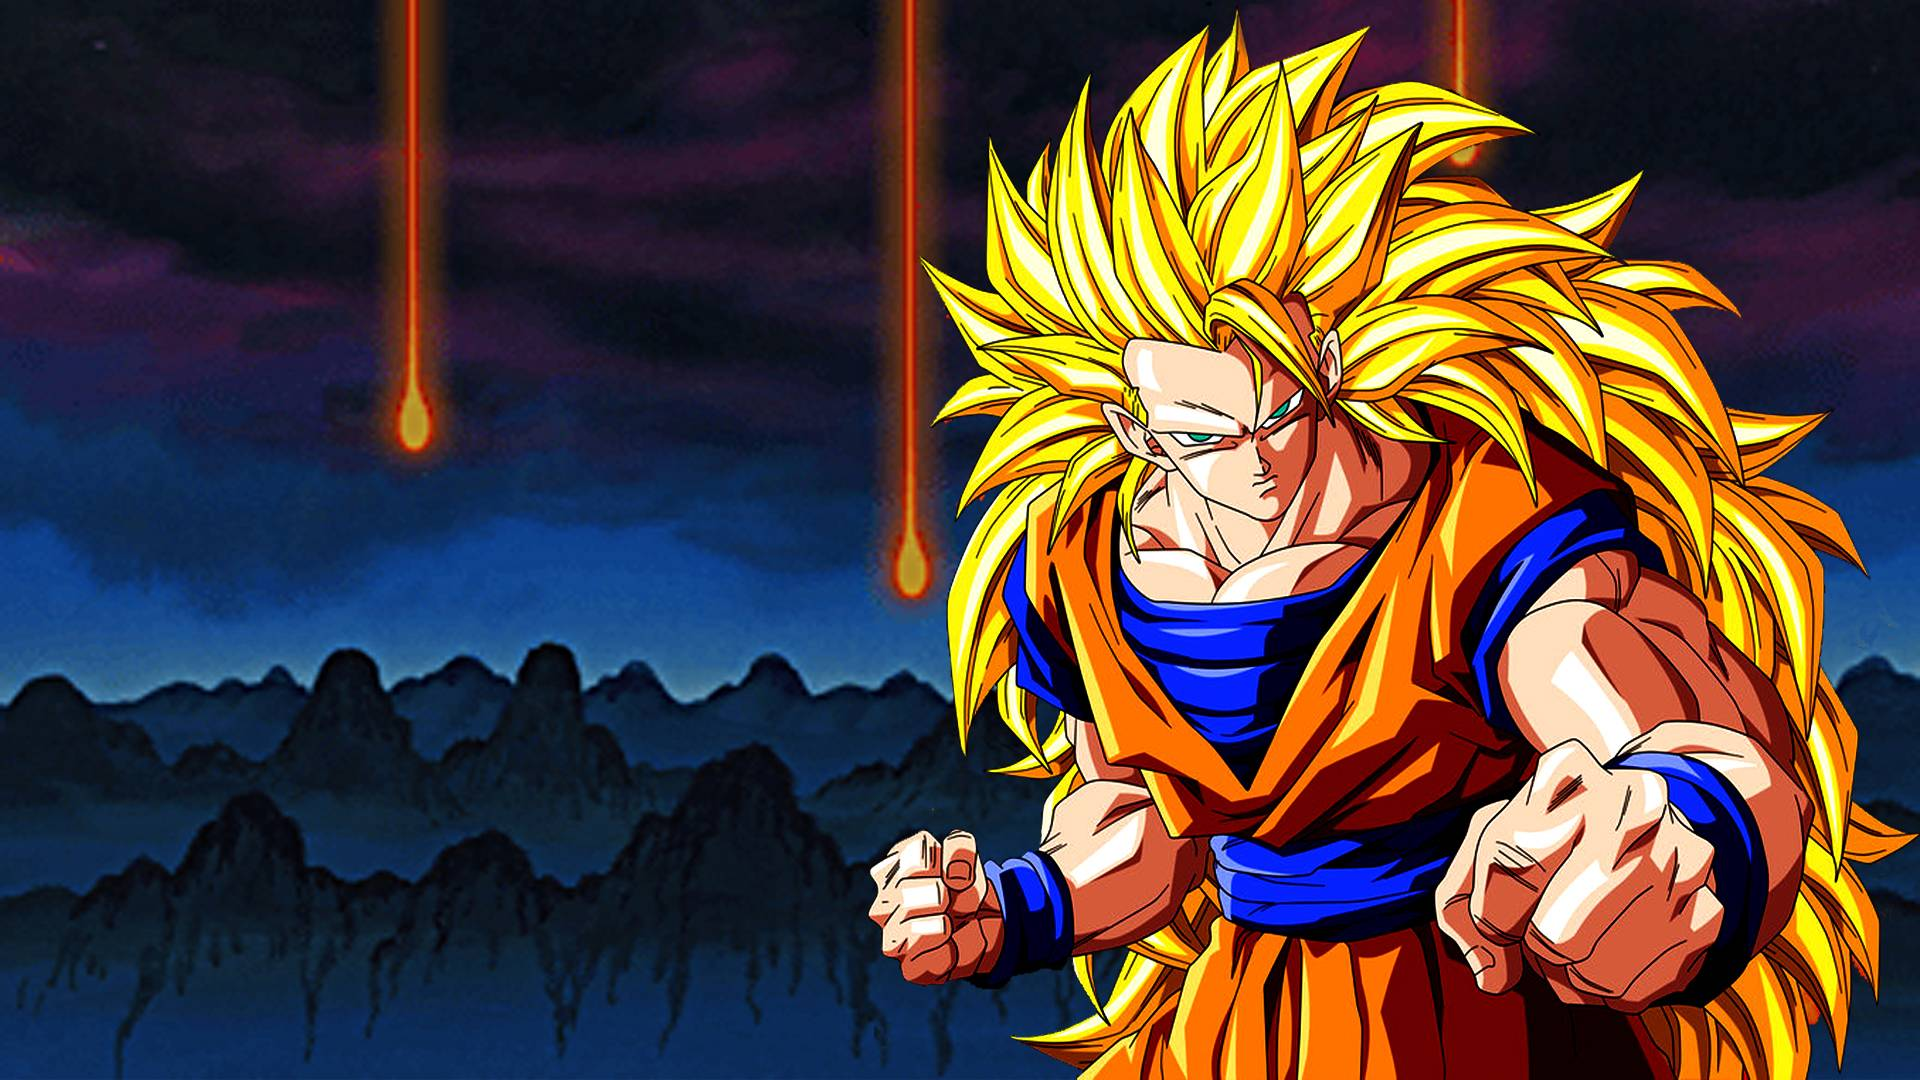 Goku Super Saiyan 3 Wallpaper HD